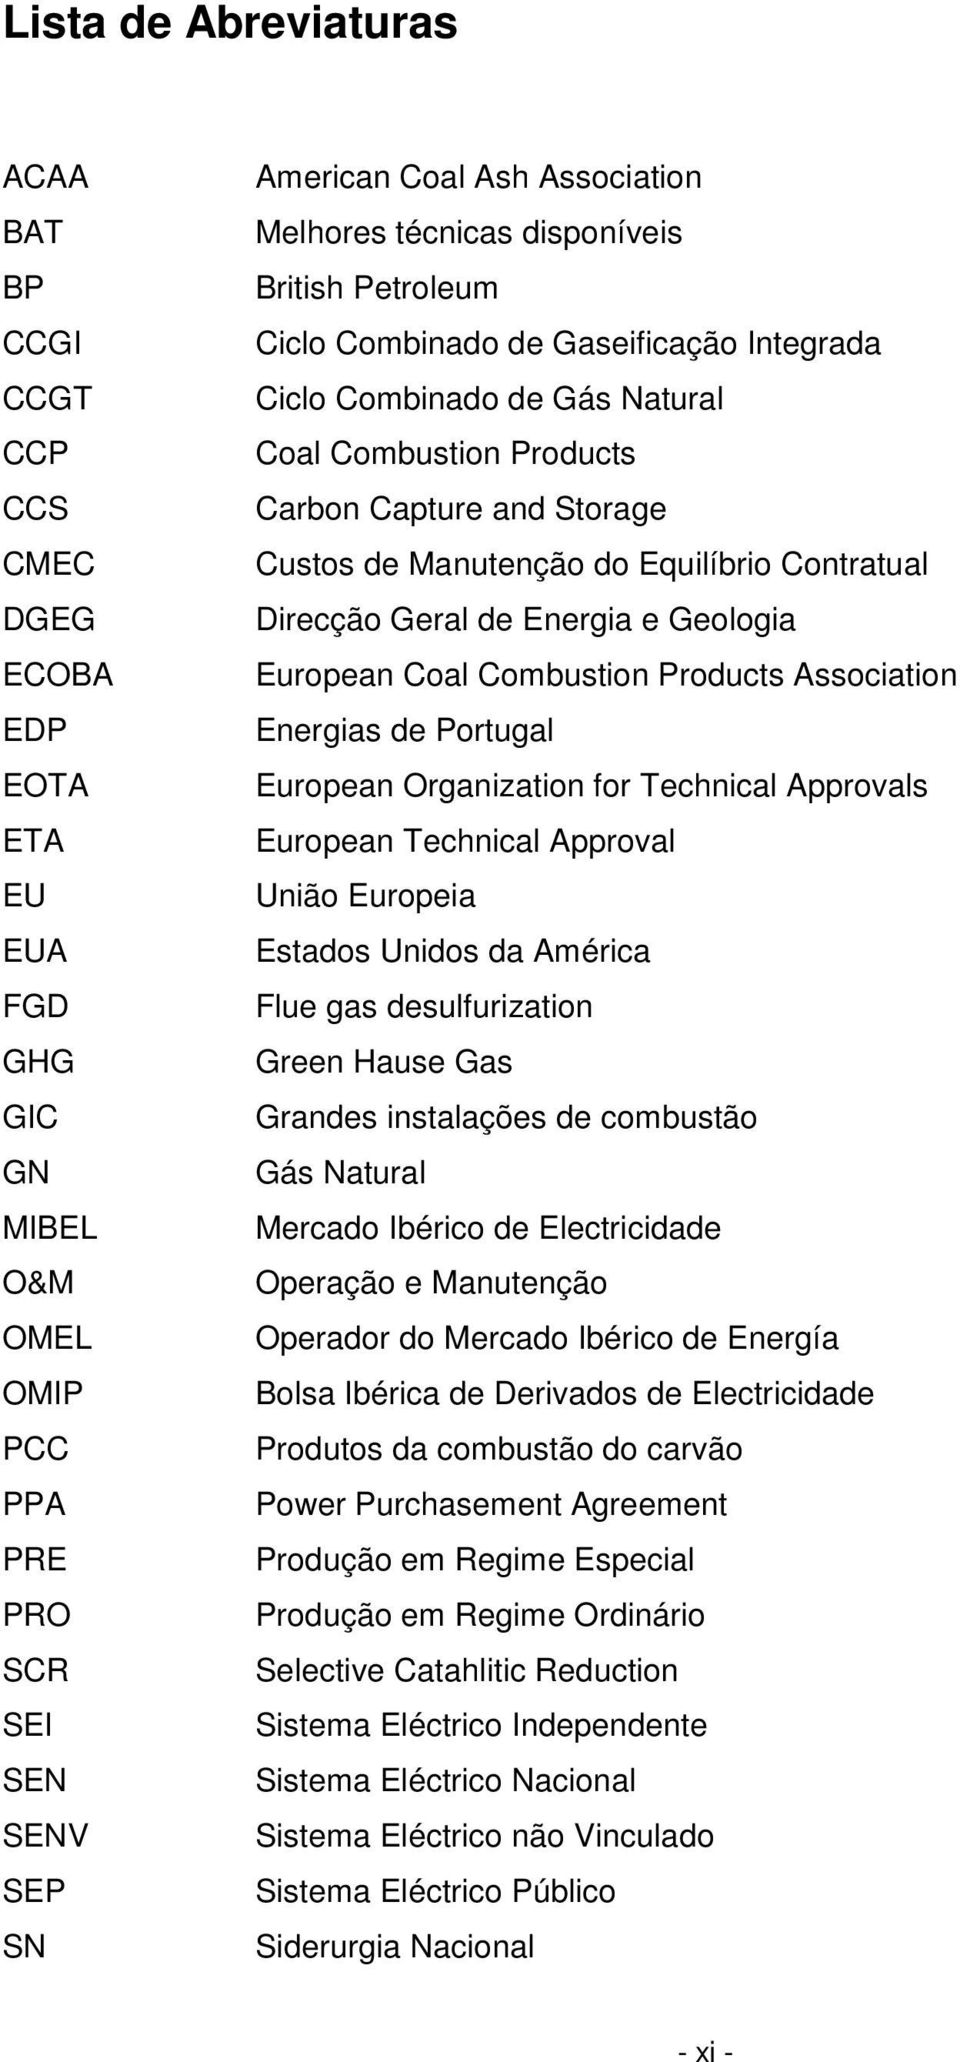 Equilíbrio Contratual Direcção Geral de Energia e Geologia European Coal Combustion Products Association Energias de Portugal European Organization for Technical Approvals European Technical Approval